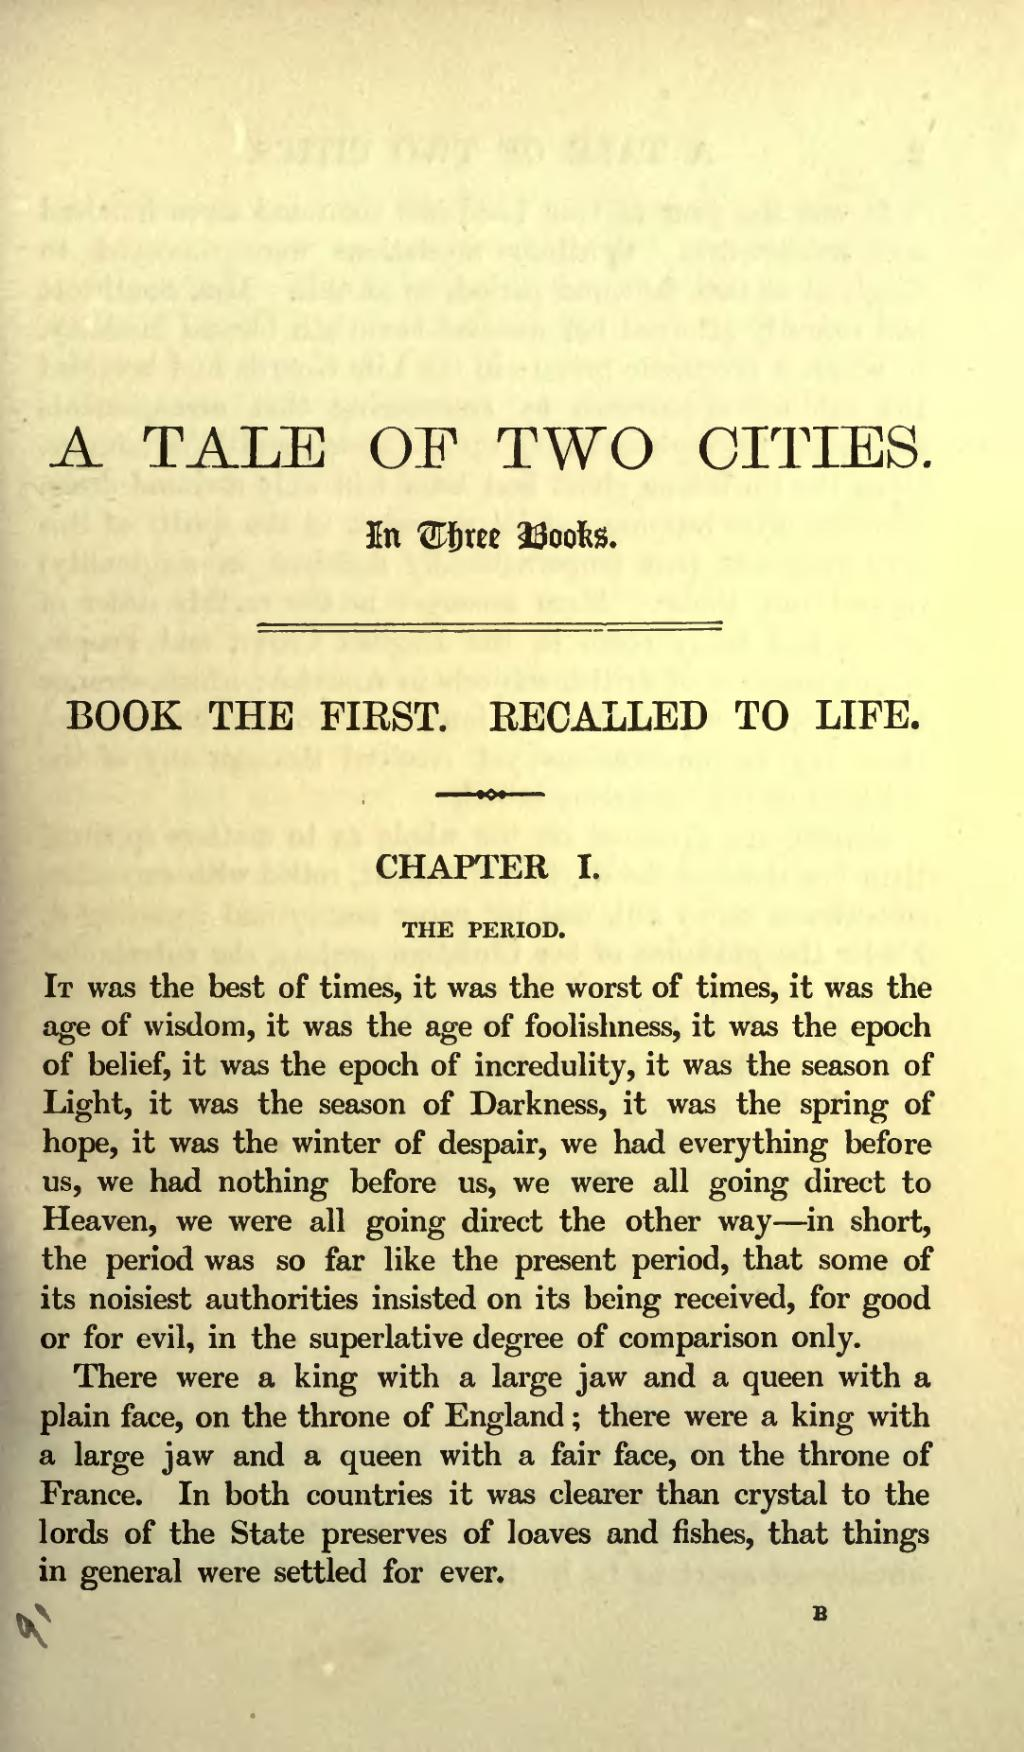 a tale of two cities summary pdf free download